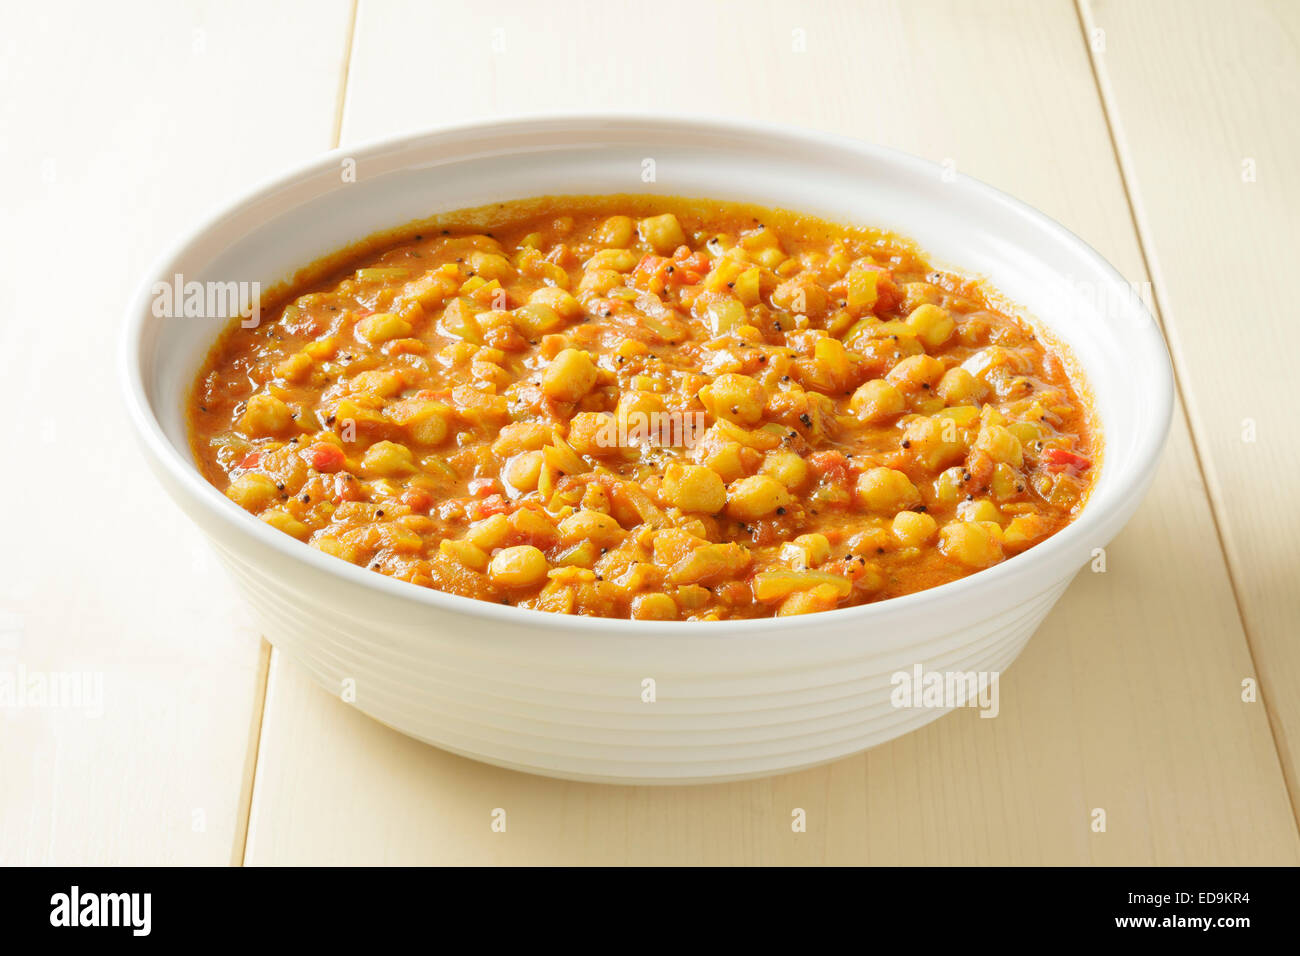 Chick pea curry - Stock Image